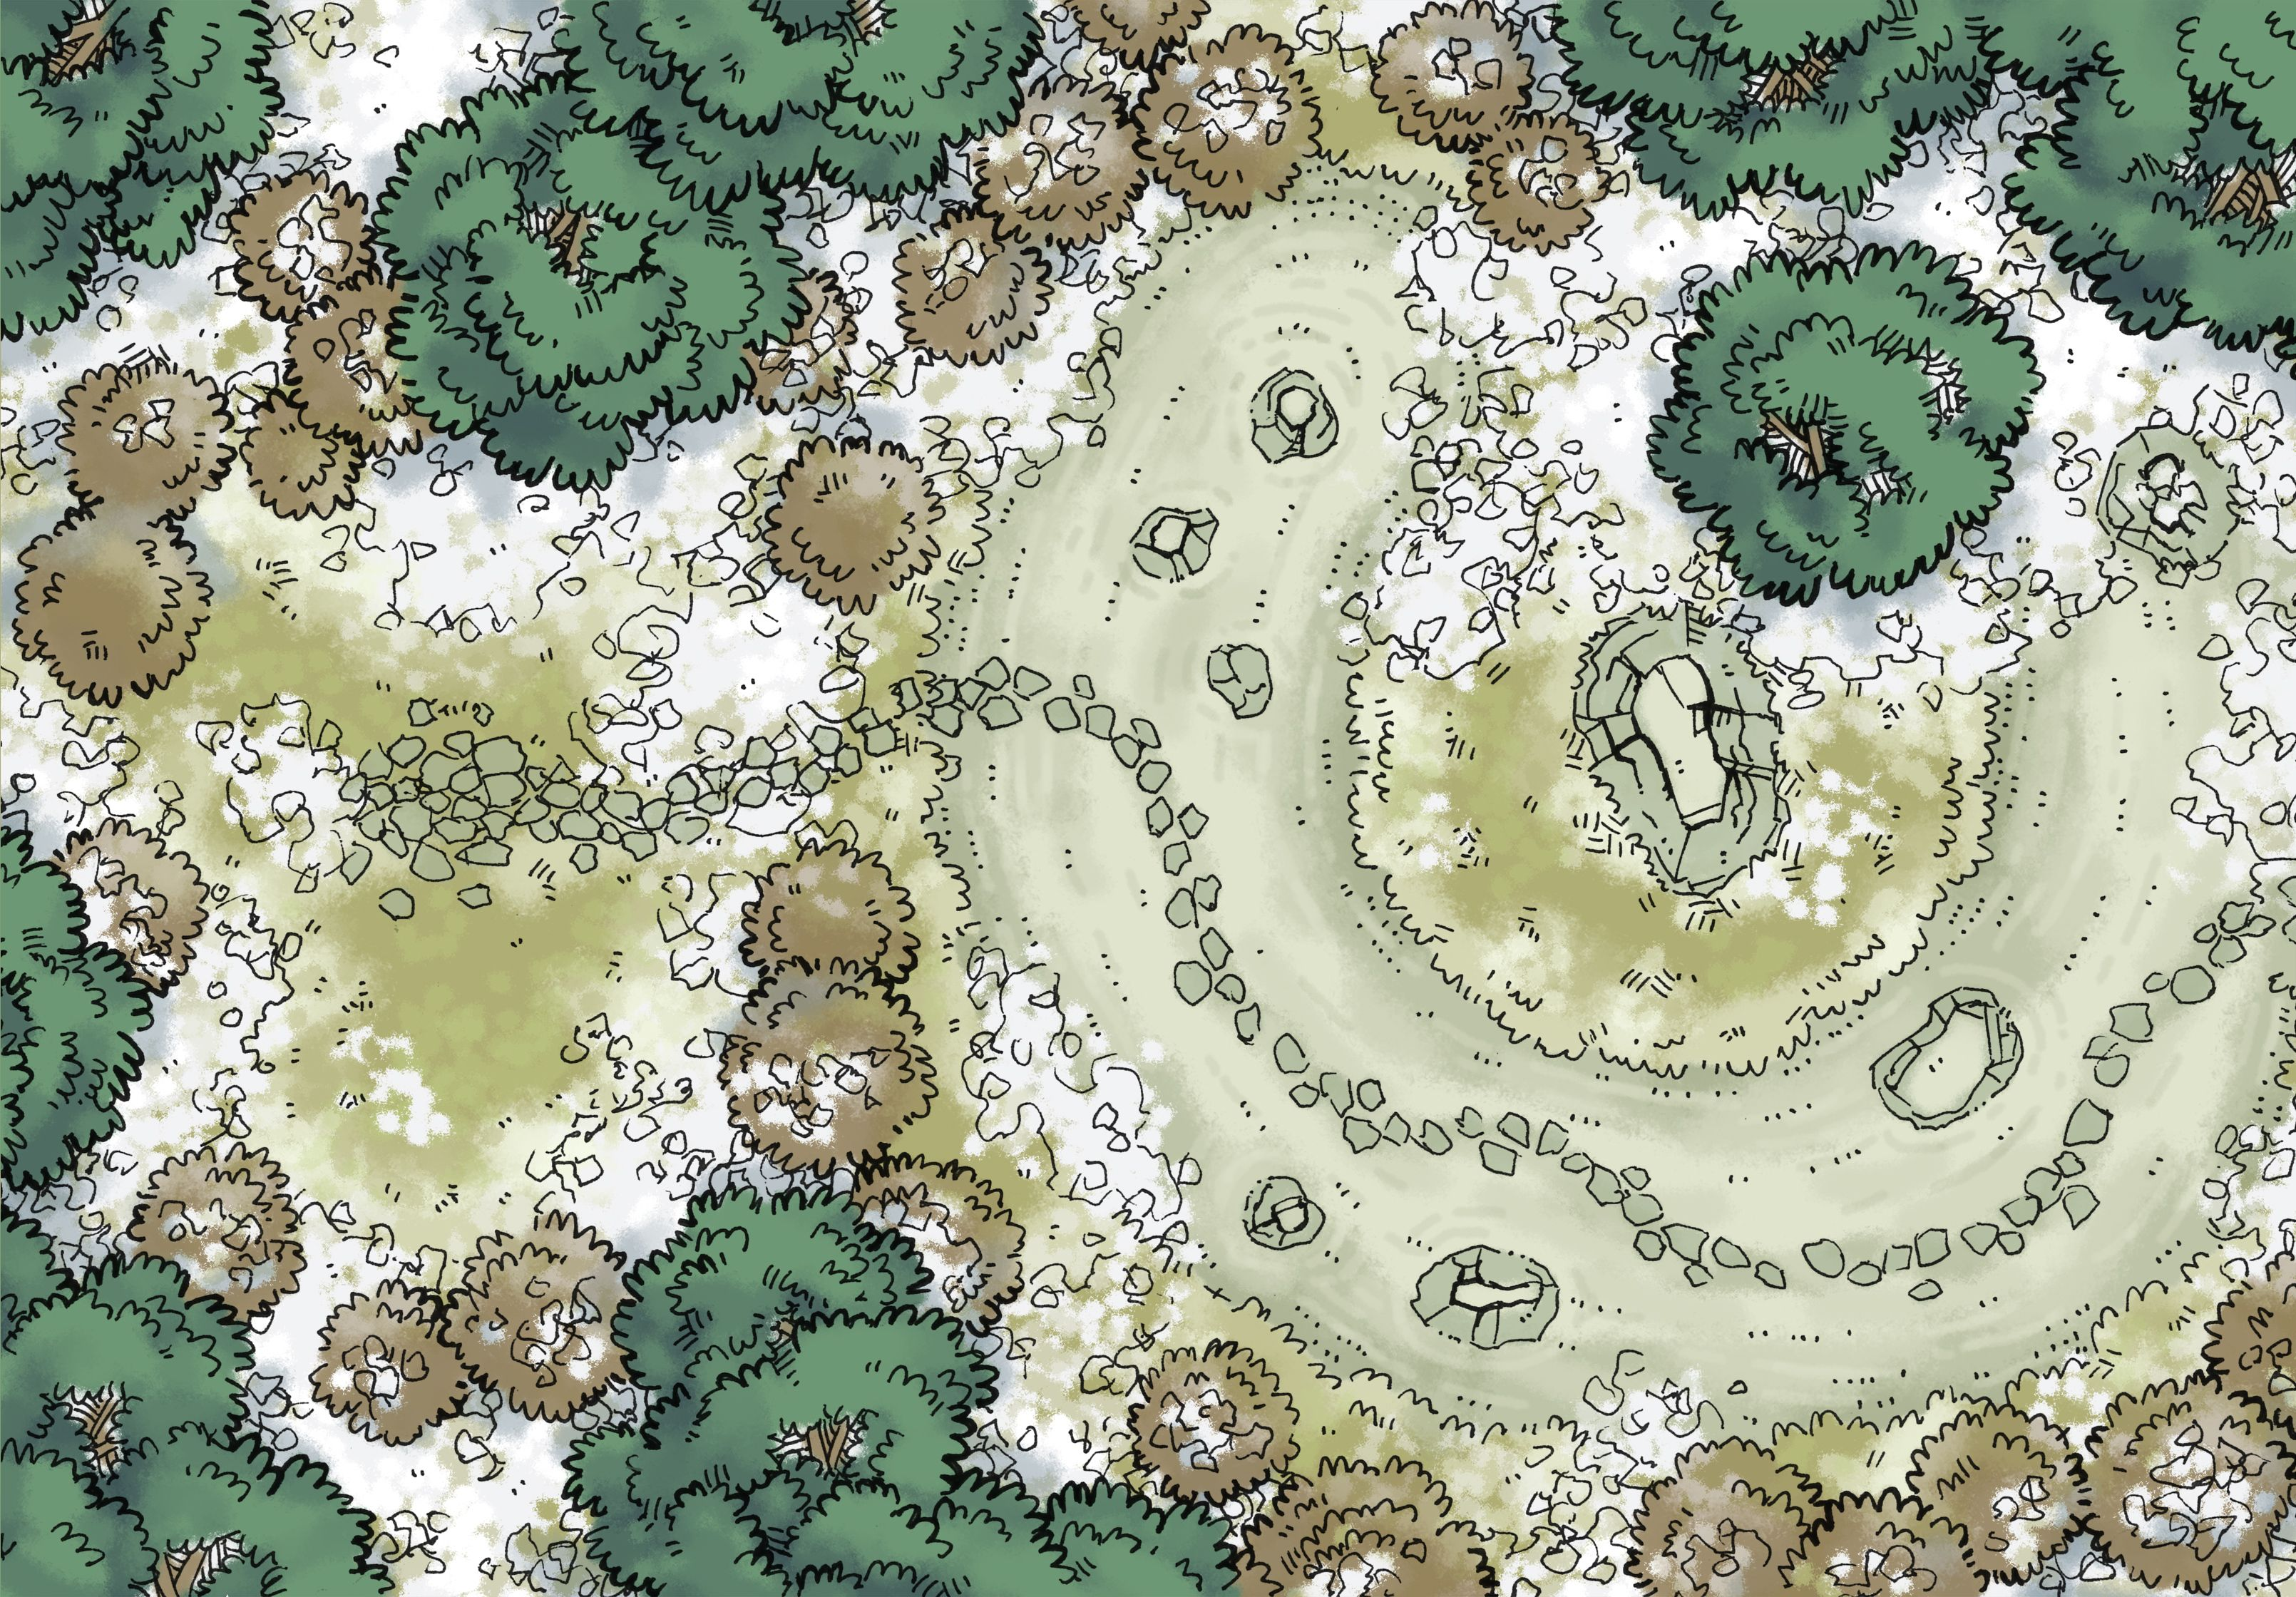 download rock garden frosted in 2019 maps fantasy map snow rh pinterest com